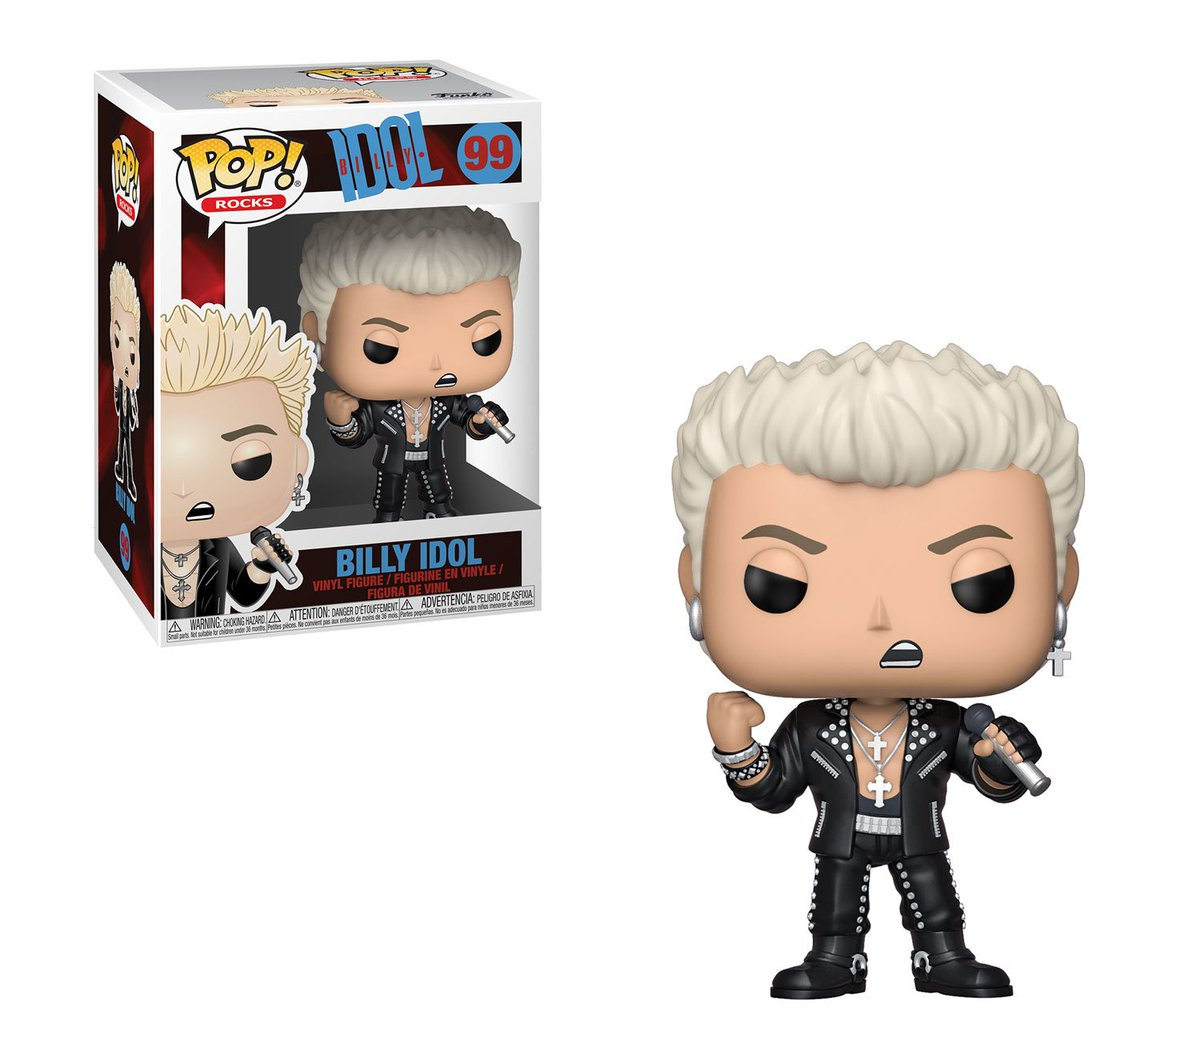 RT & follow @OriginalFunko for a chance to WIN a Billy Idol Pop!